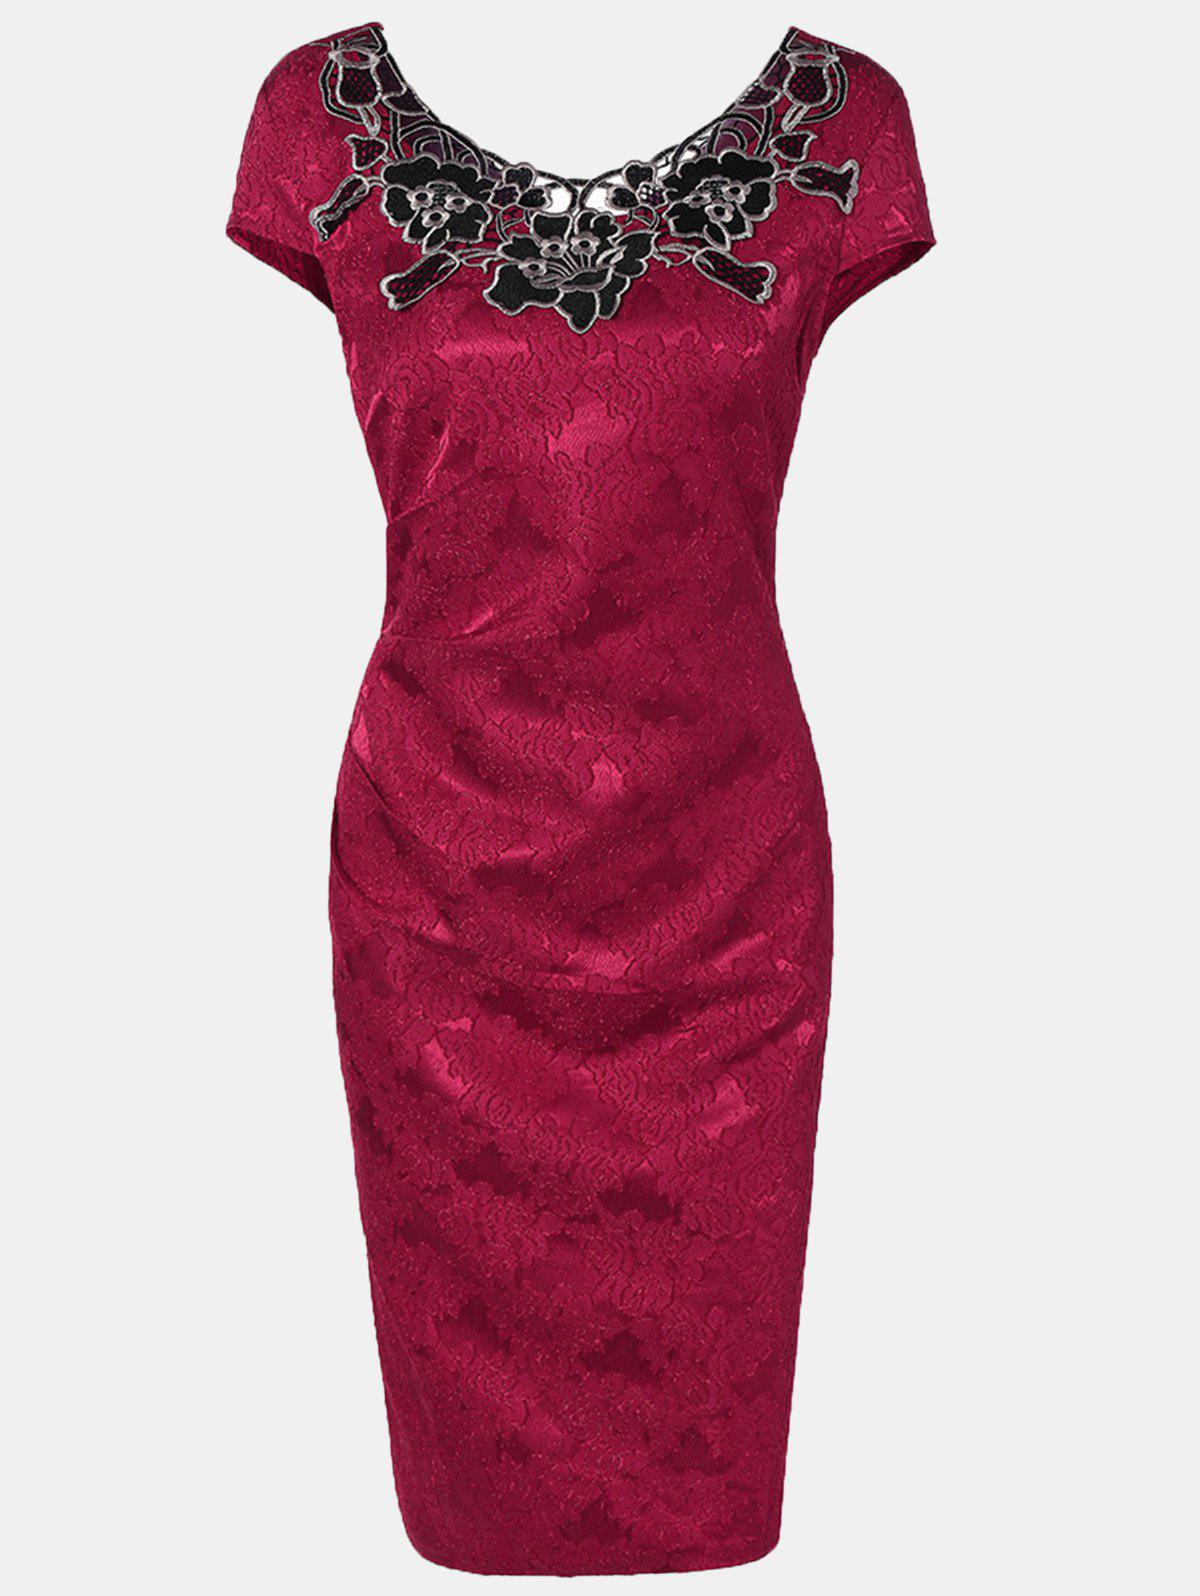 Women Floral Embroidered Short Sleeve Pencil Dress - RED 3XL